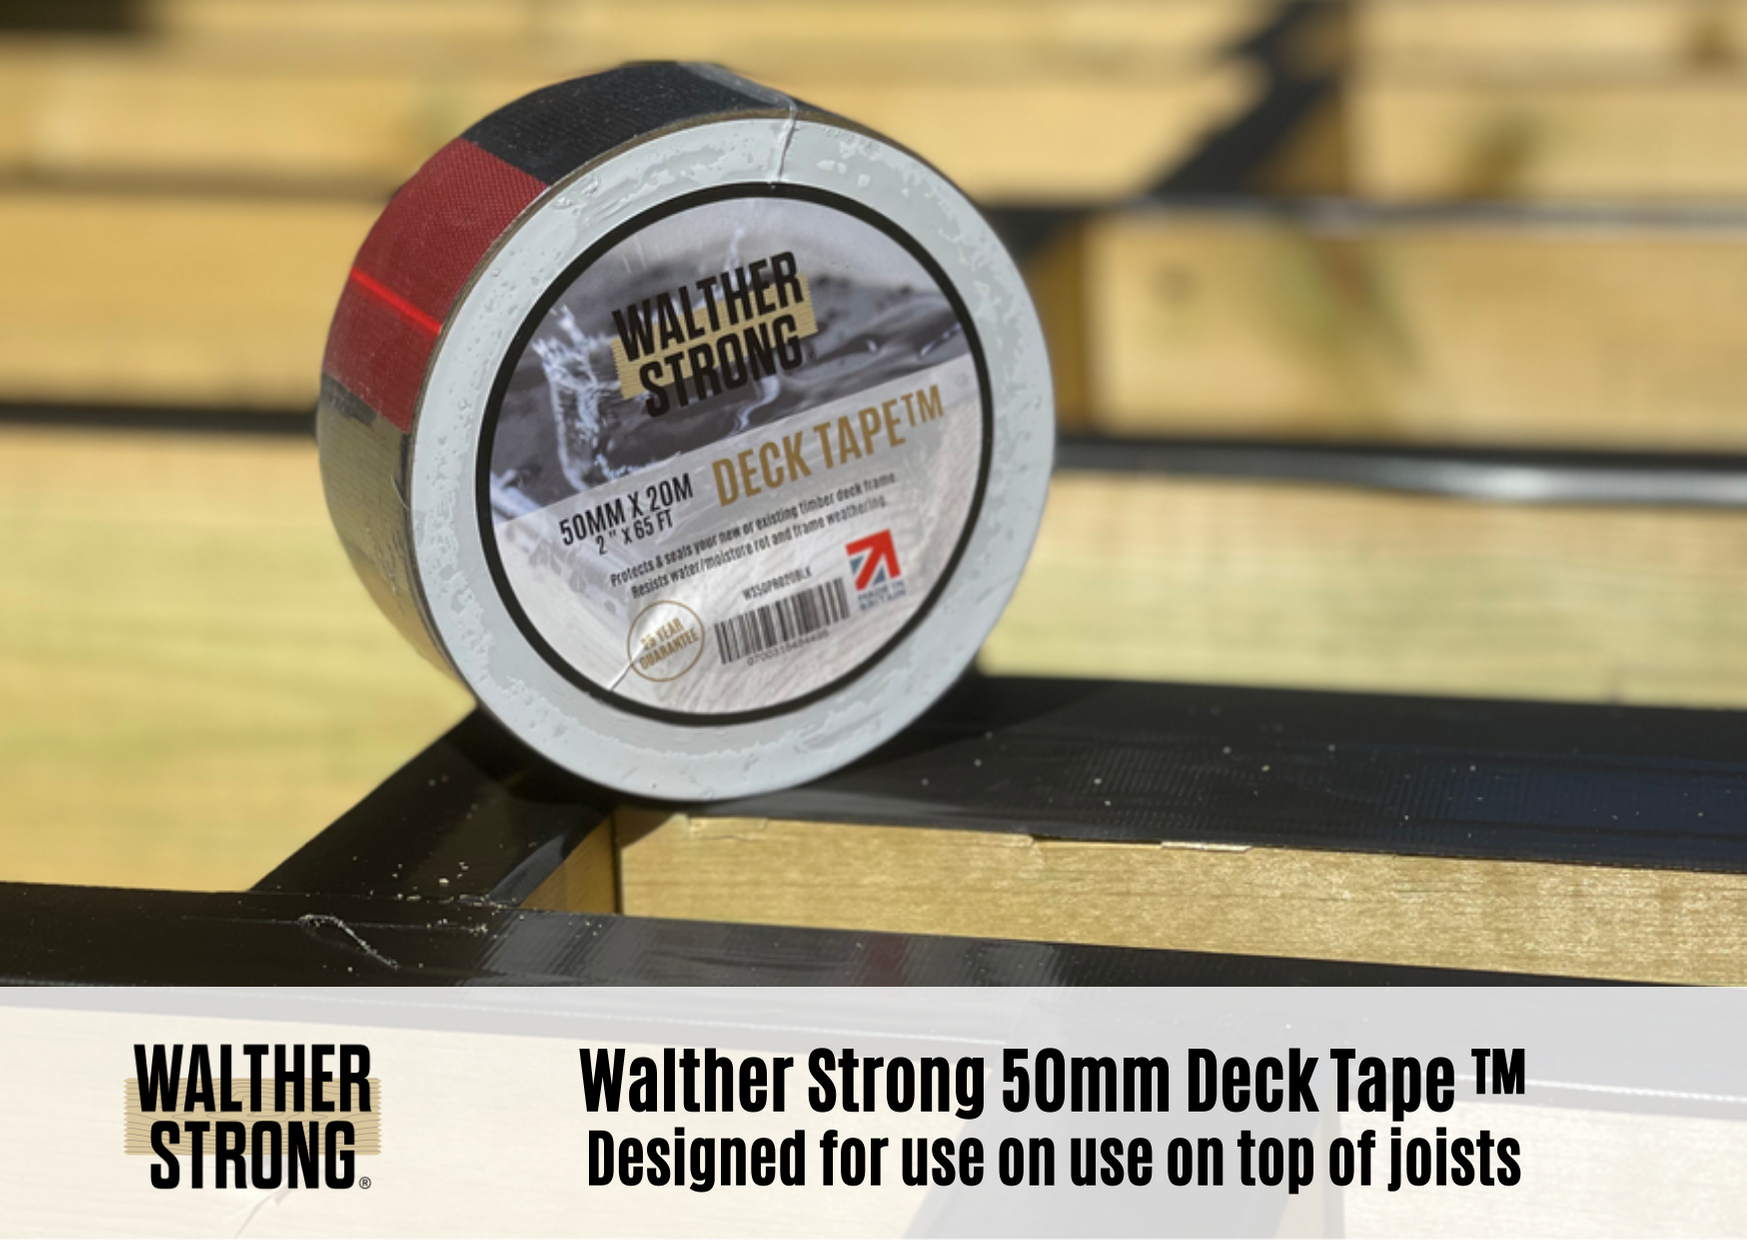 DECK TAPE® 50MMx20M Black  [Recommended for use on top of joists]